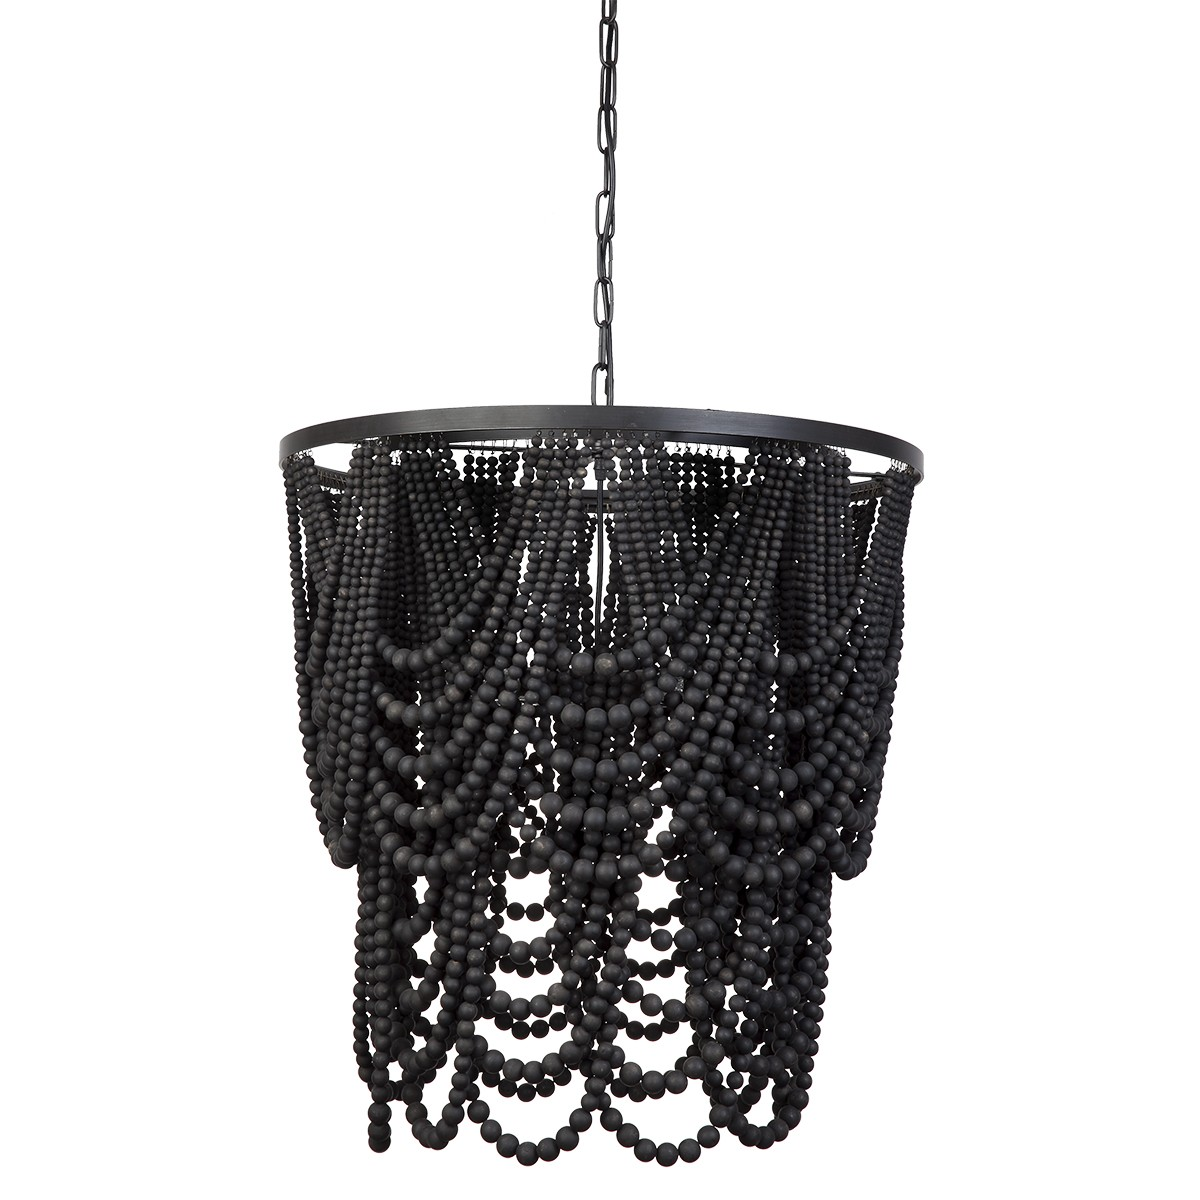 Bilgola Hand Crafted Wooden Beads Pendant Light, Black